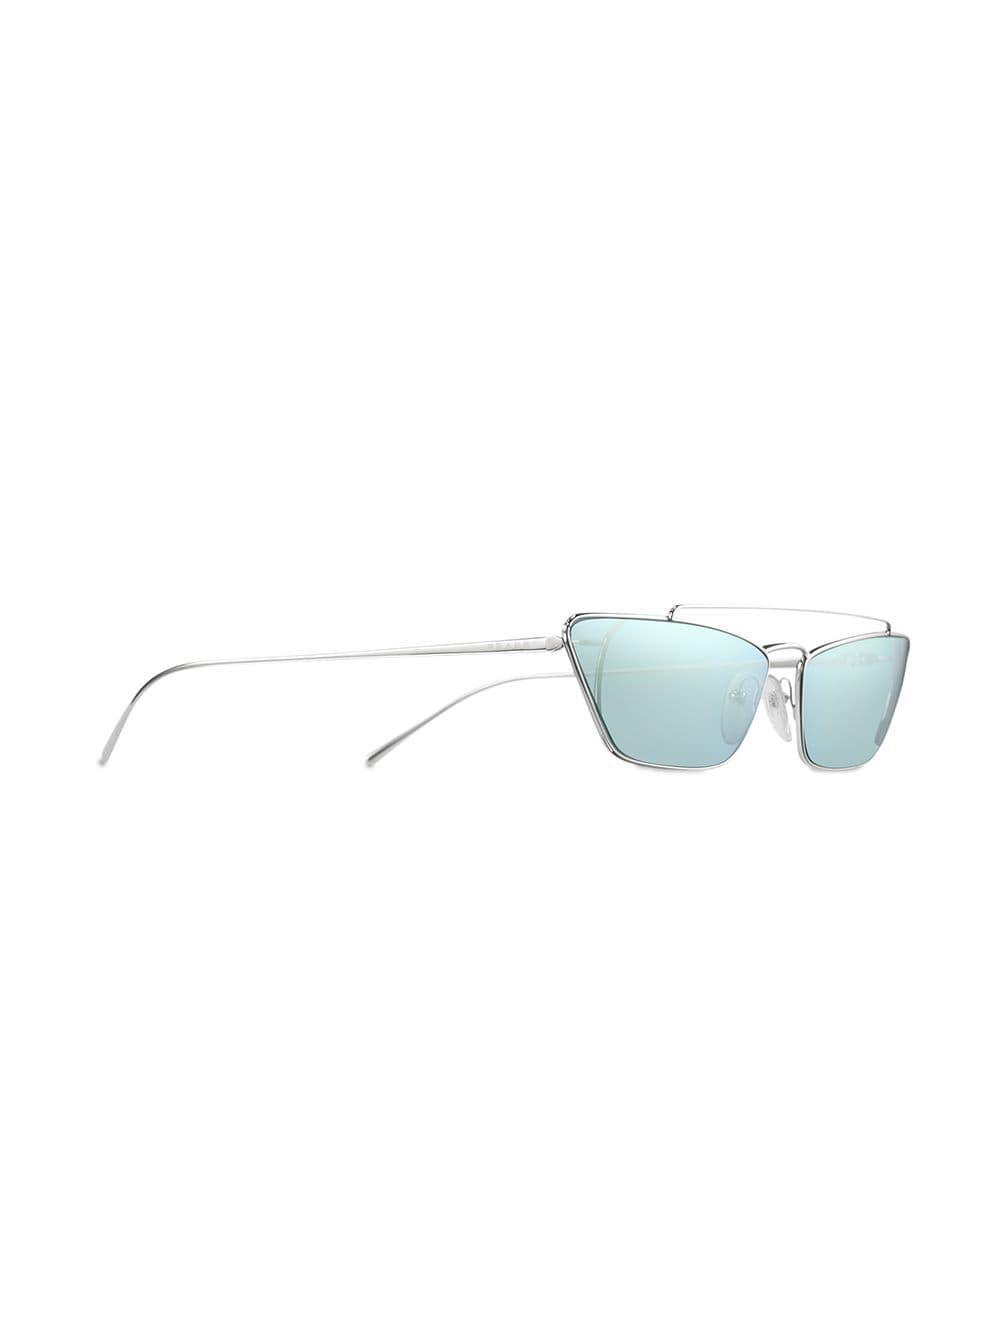 3899cb22e24 ... Prada Ultravox Sunglasses - Lyst. View fullscreen